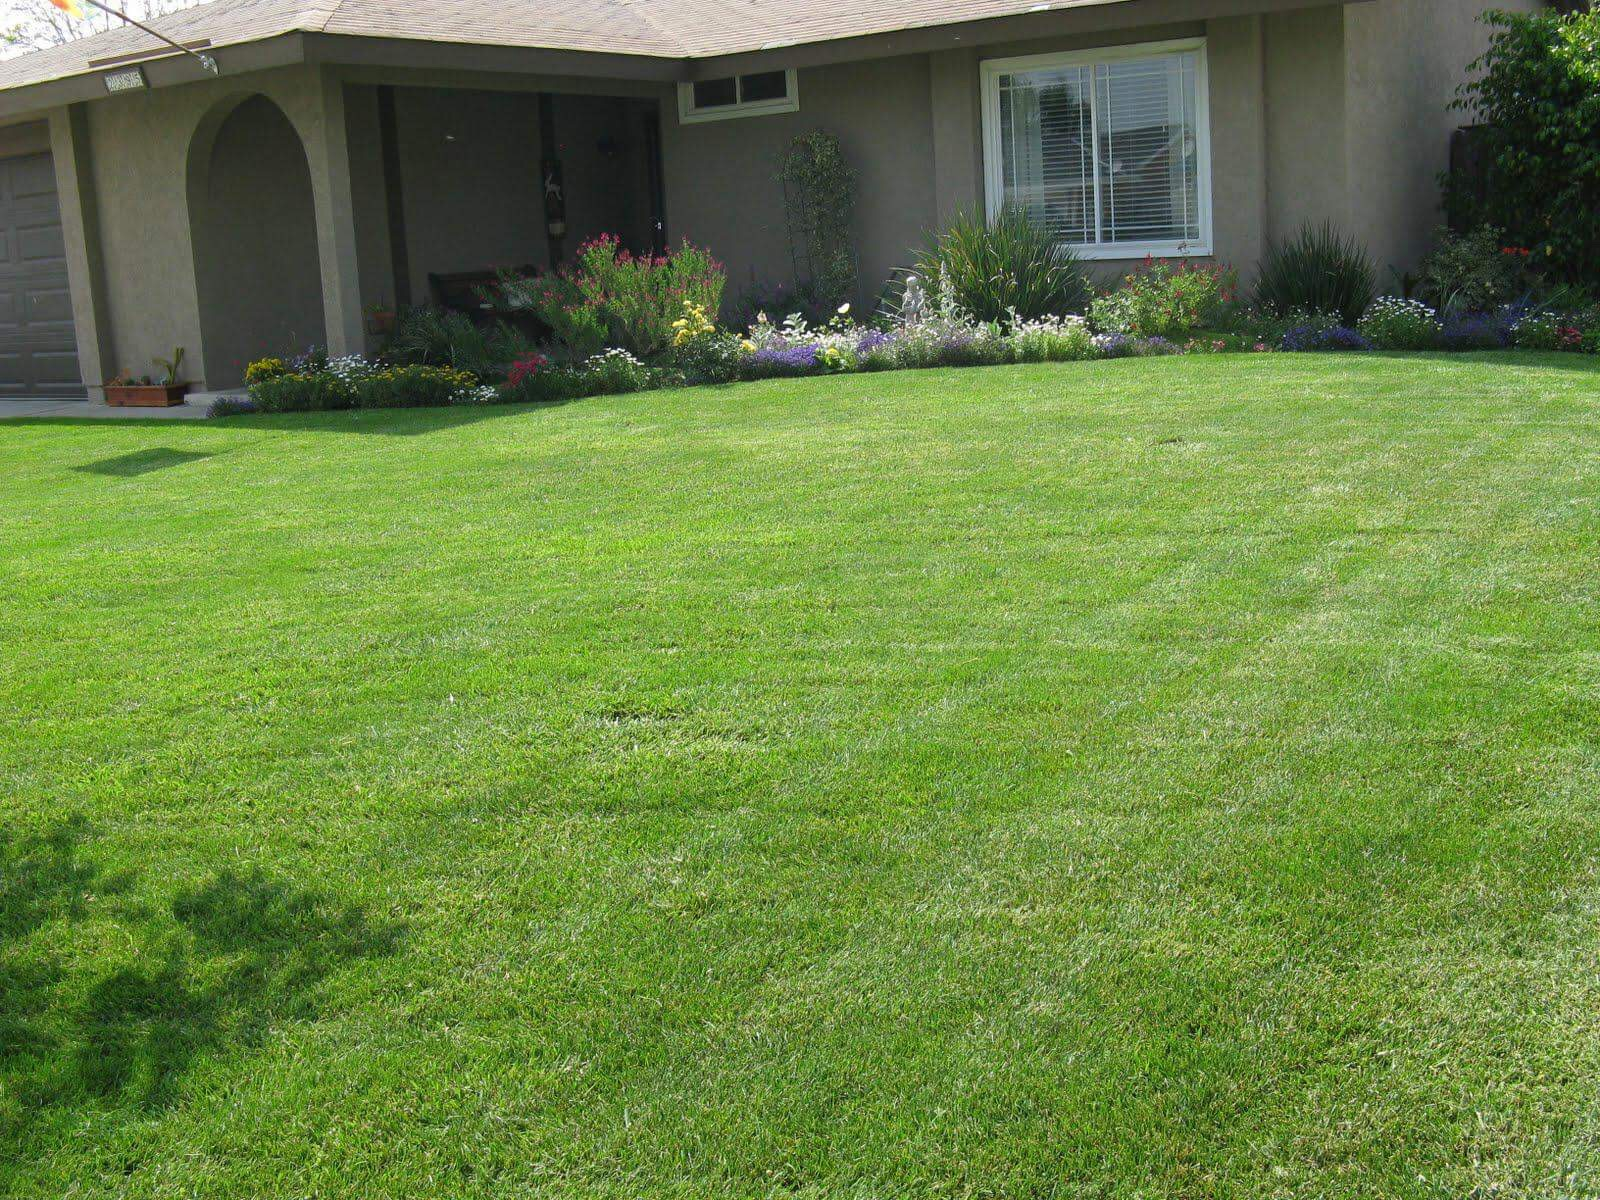 Lawn Care Service in Okc, OK, 73135